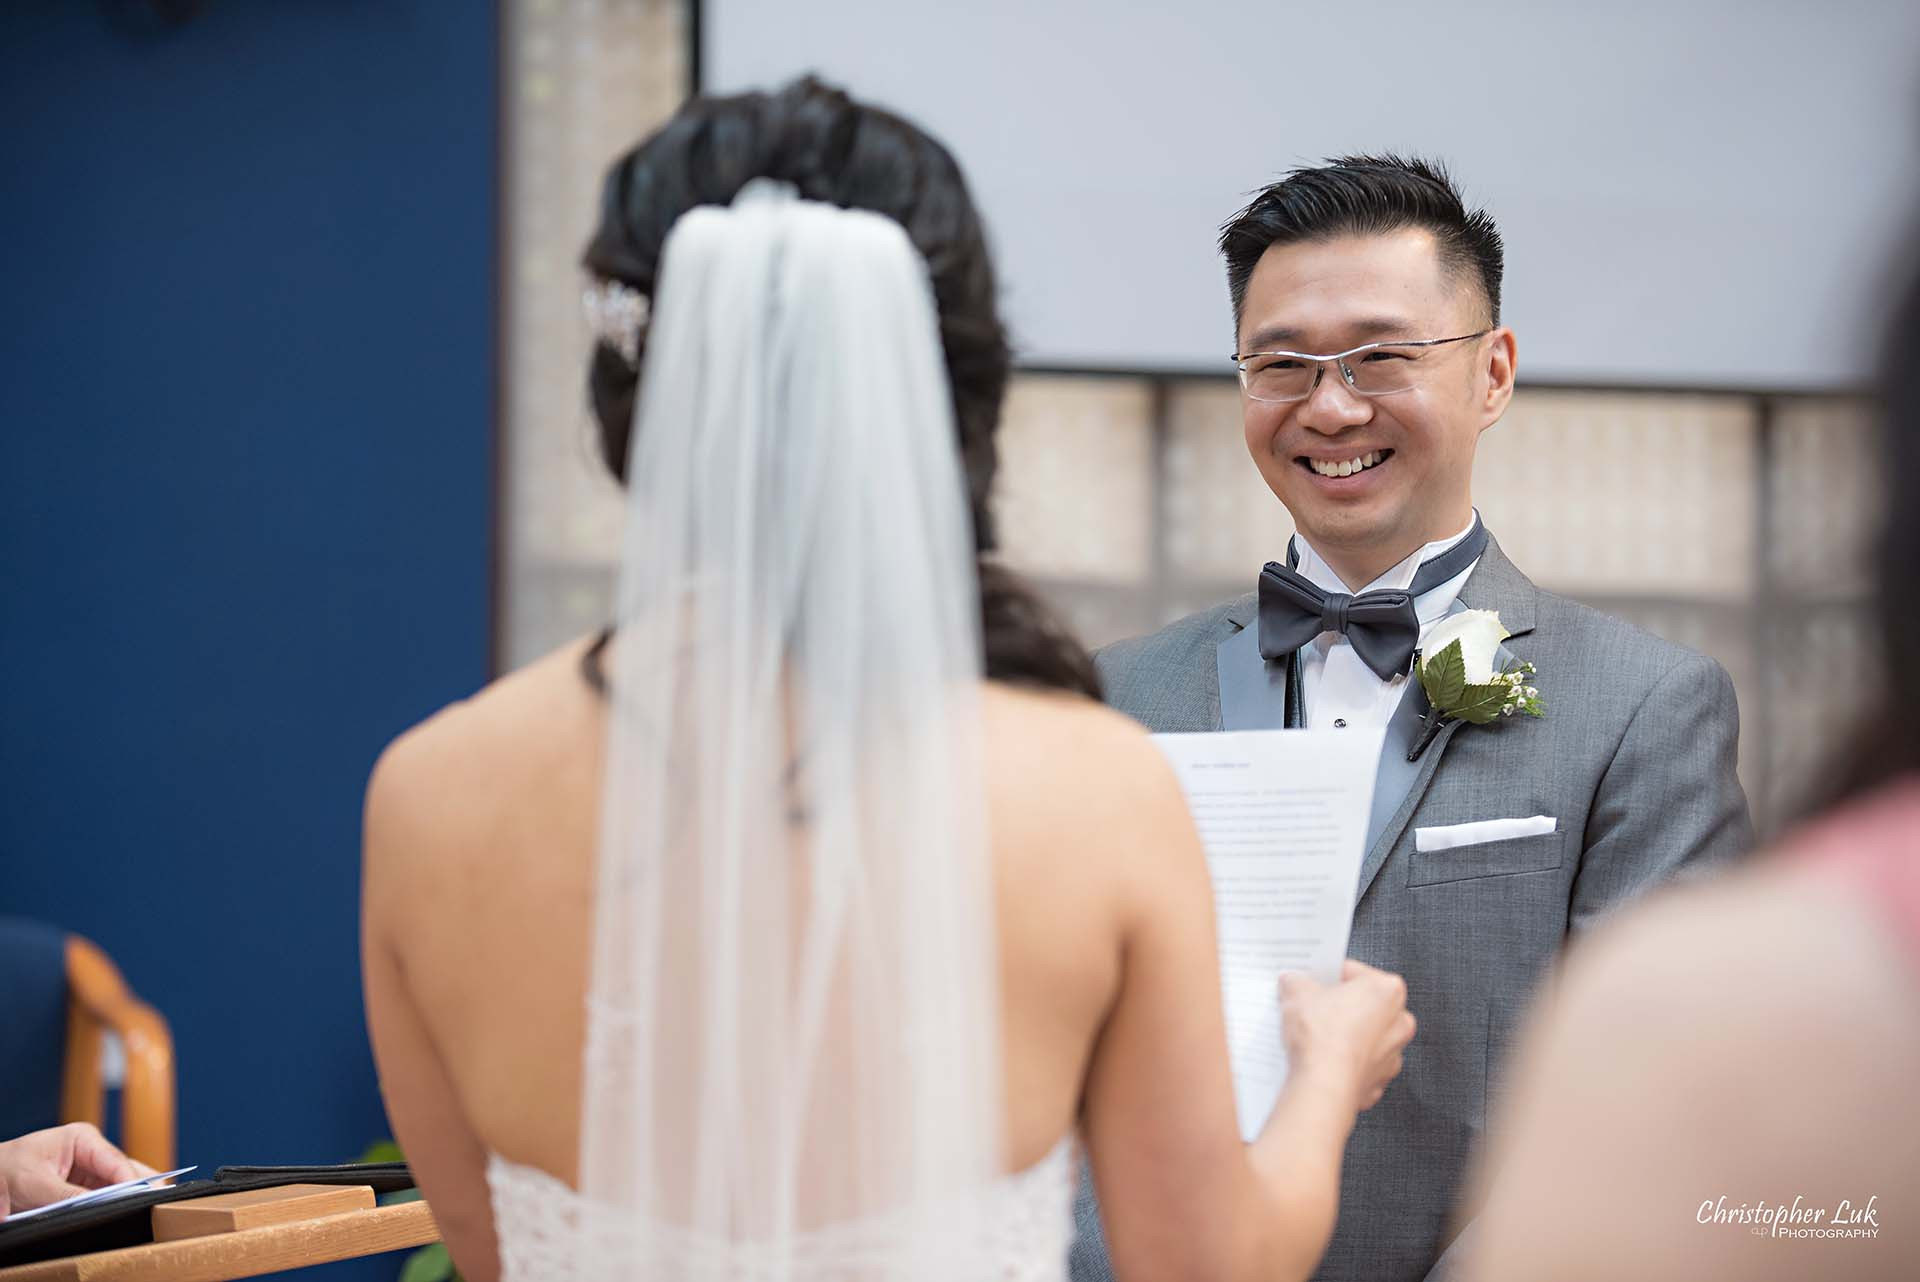 Christopher Luk Toronto Wedding Photographer Trinity York Mills Church Ceremony Sanctuary Candid Natural Photojournalistic Groom Vows Reaction Laugh